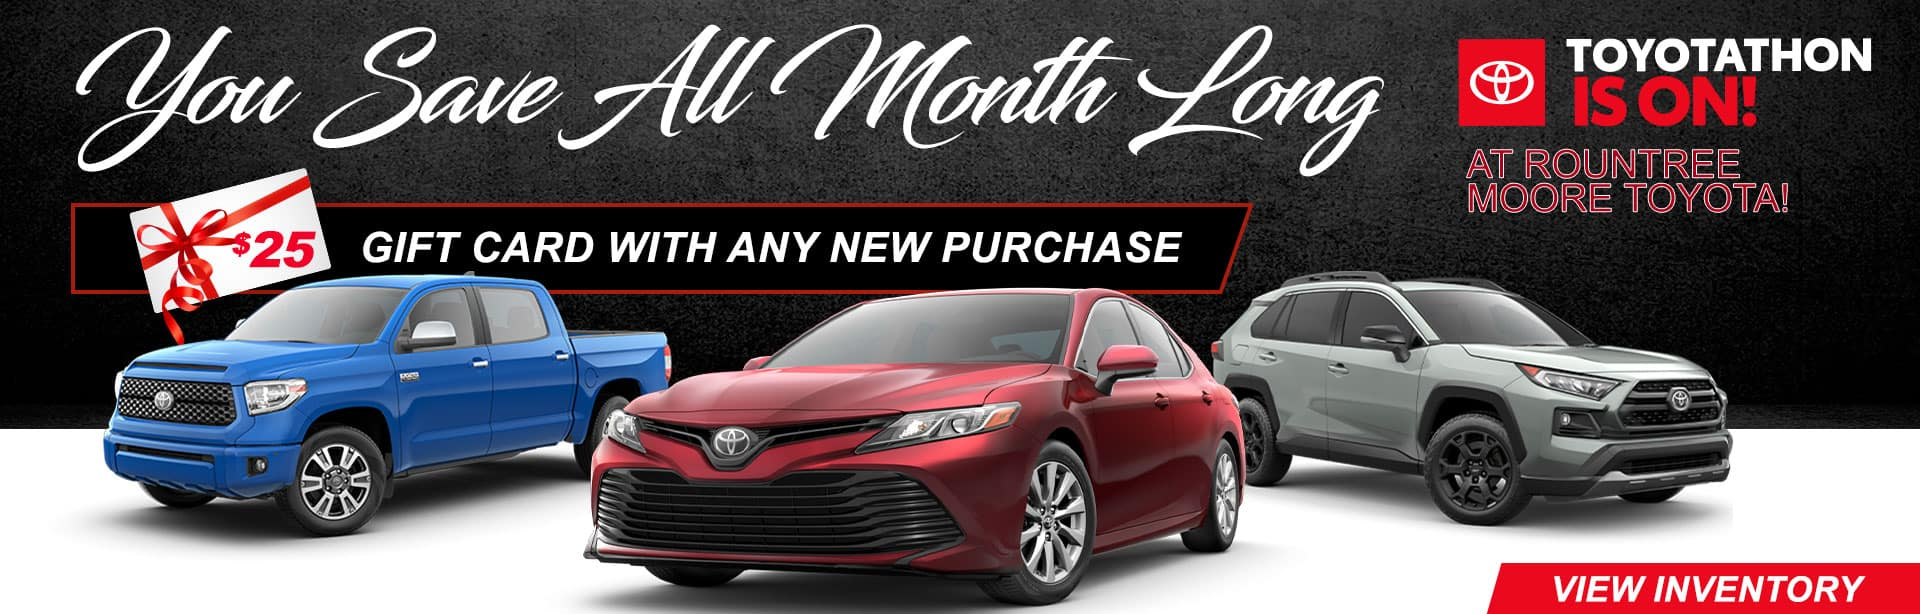 You Save All Month Long | Toyotathon Is On! At Rountree Moore Toyota | $25 Gift Card With Any New Purchase